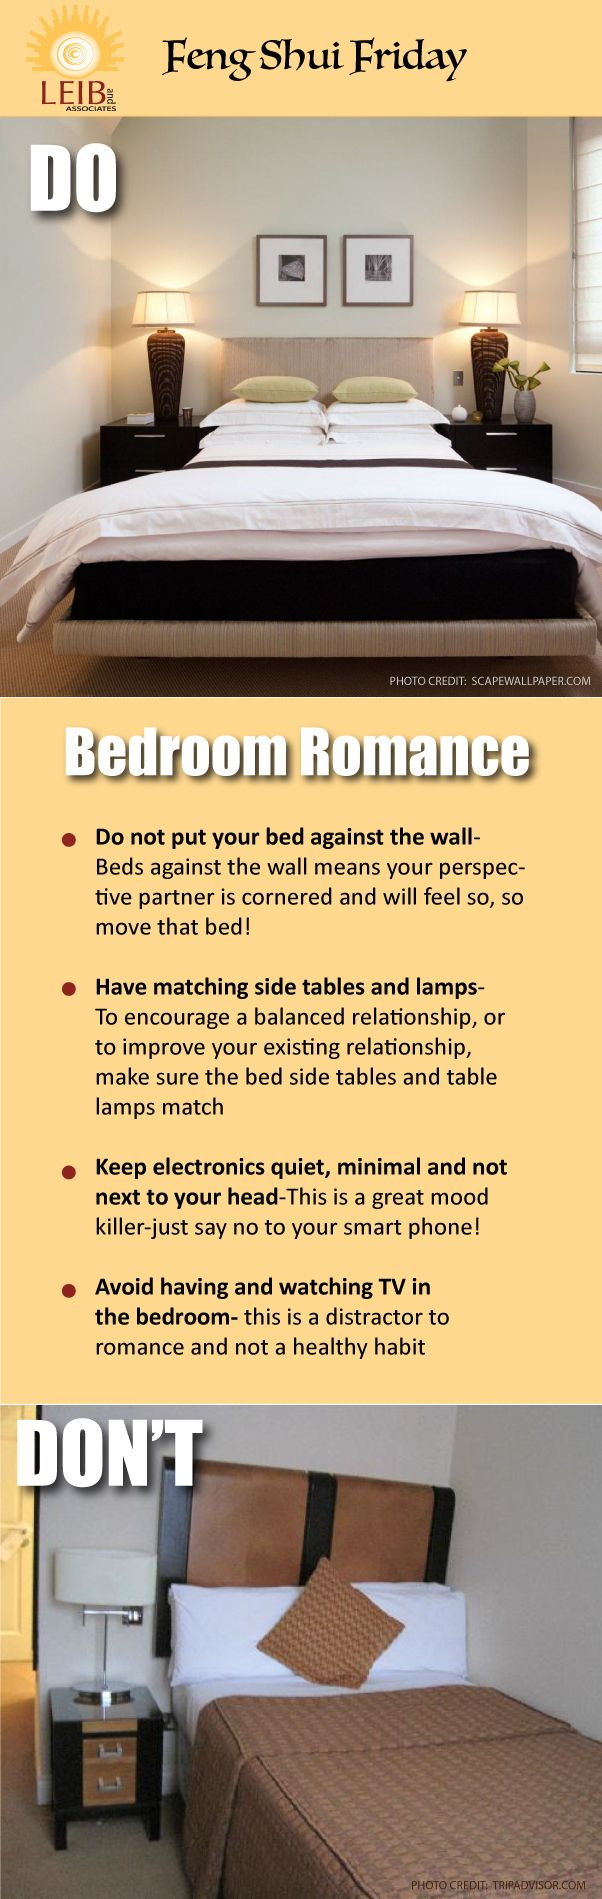 Romance Relationships In The Bedroom Master Bedrooms Often Romance For Good Romantic Feng